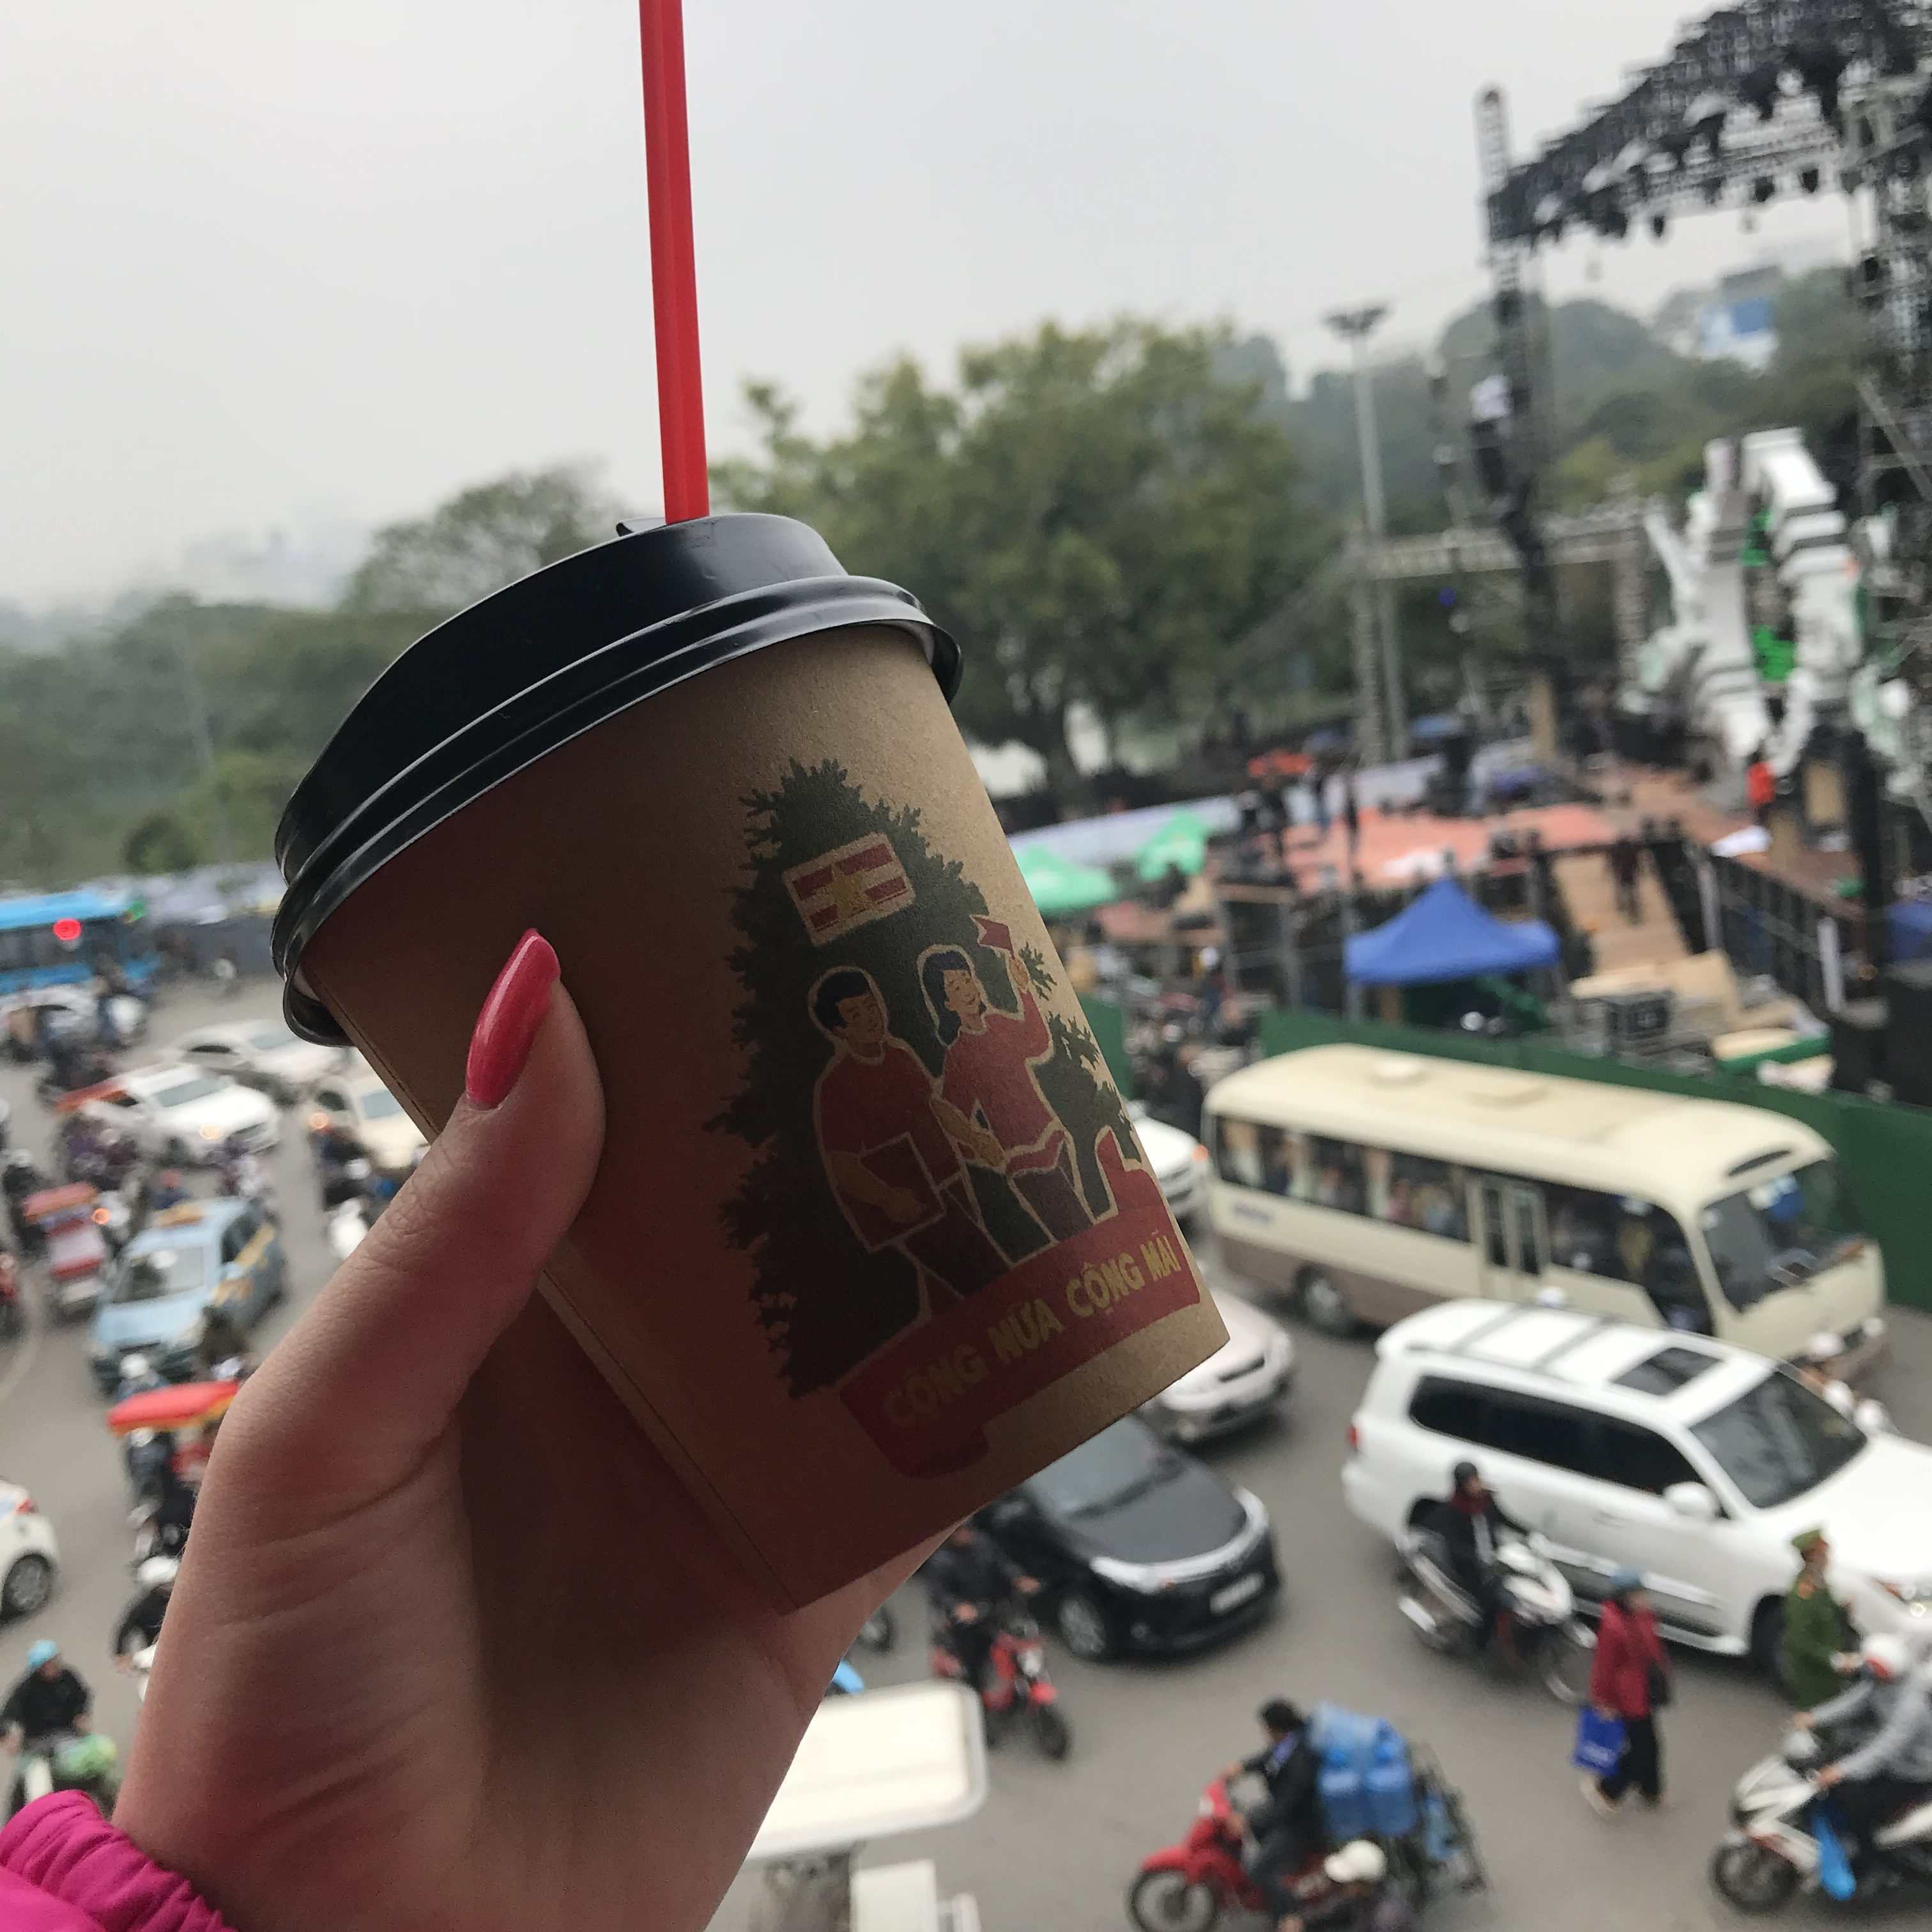 Drinking coffee at Cong in Hanoi